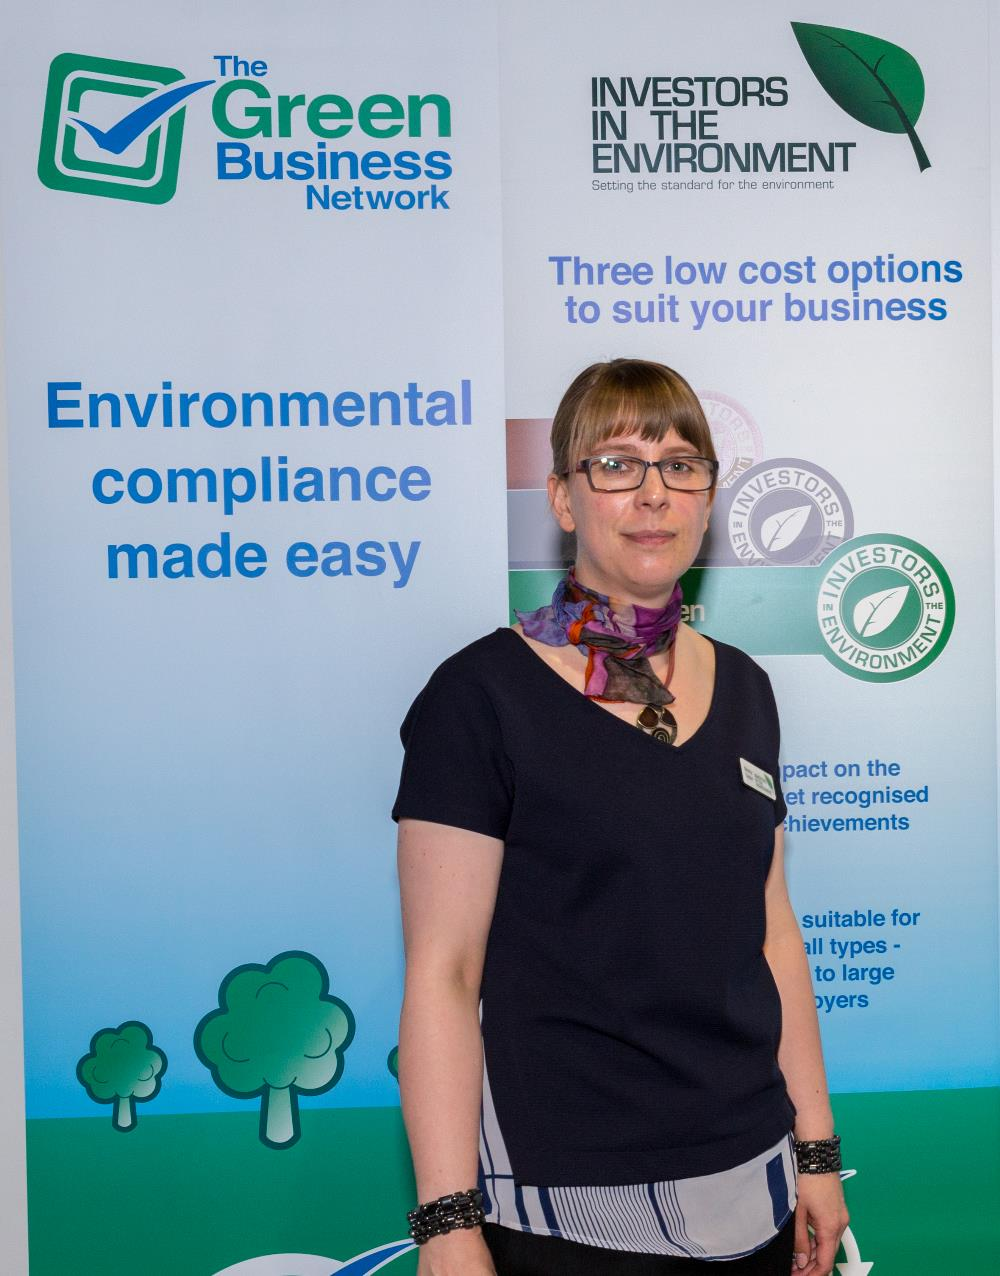 Becky Taylor from Investors in the Environment